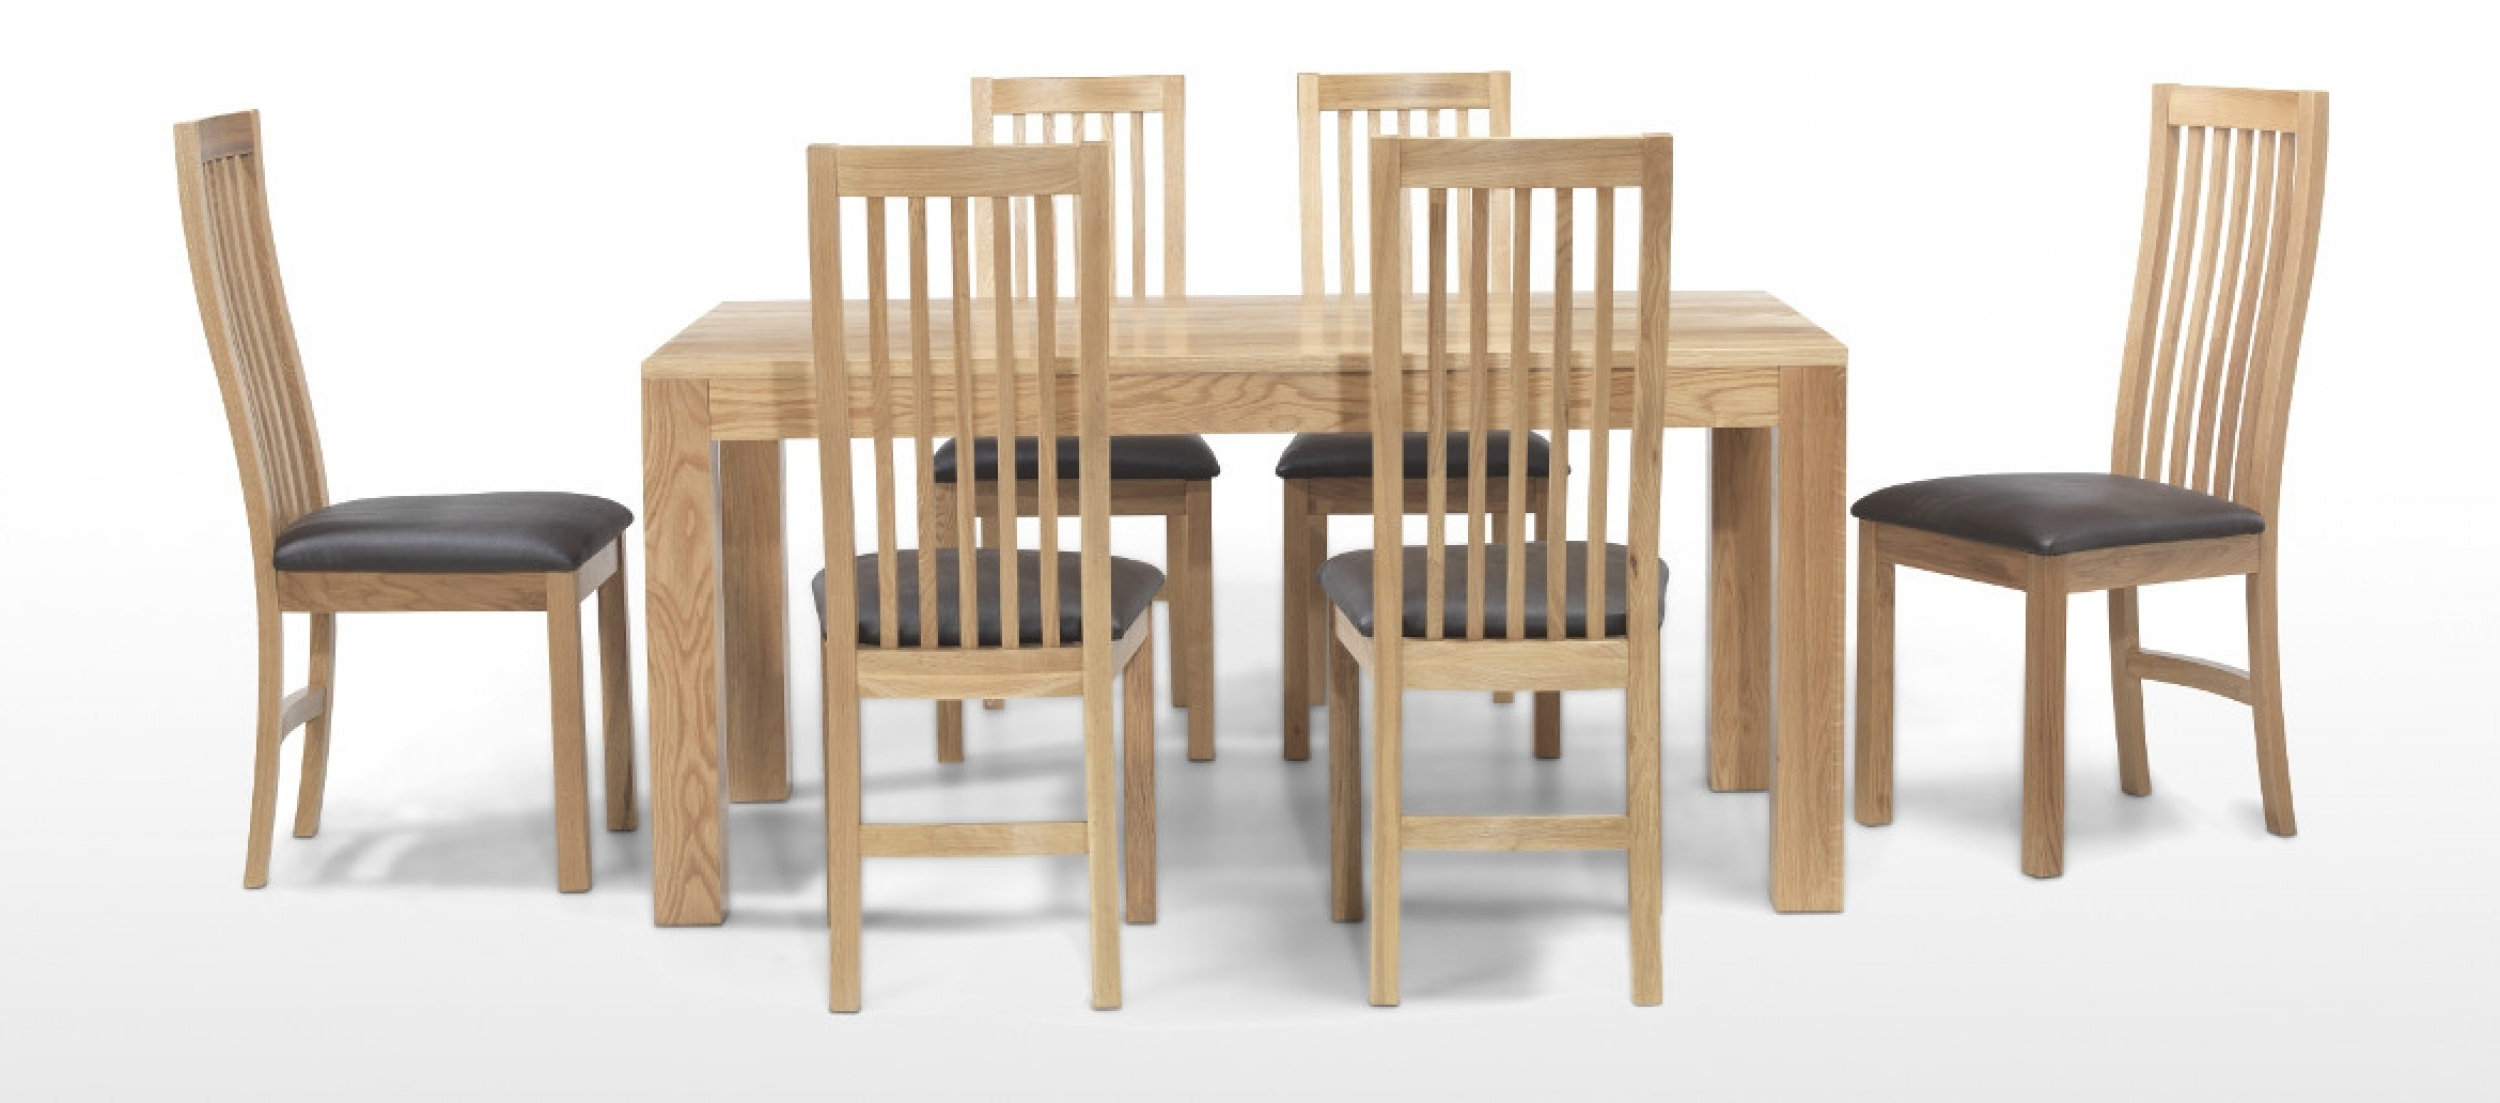 Quercus Living With Favorite Extending Dining Tables With 6 Chairs (View 22 of 25)